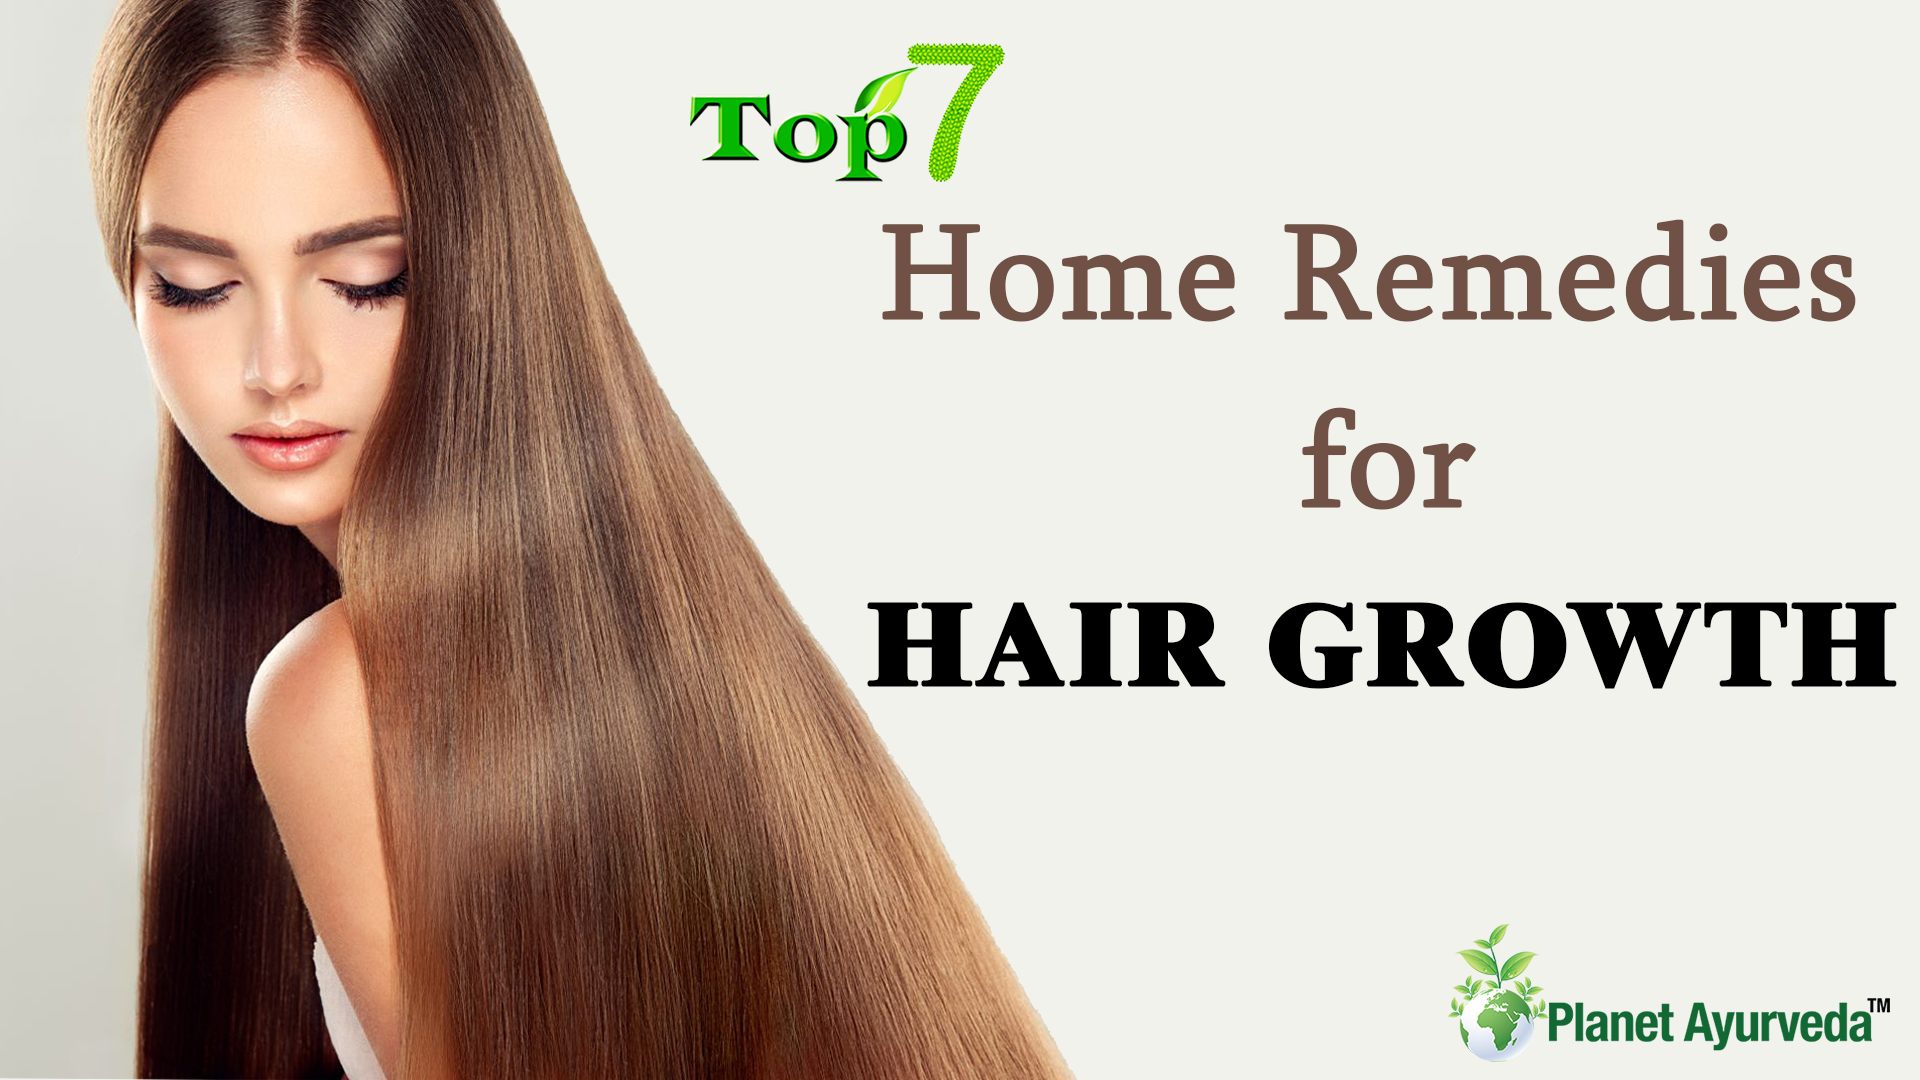 Top 7 Home Remedies for Hair Growth